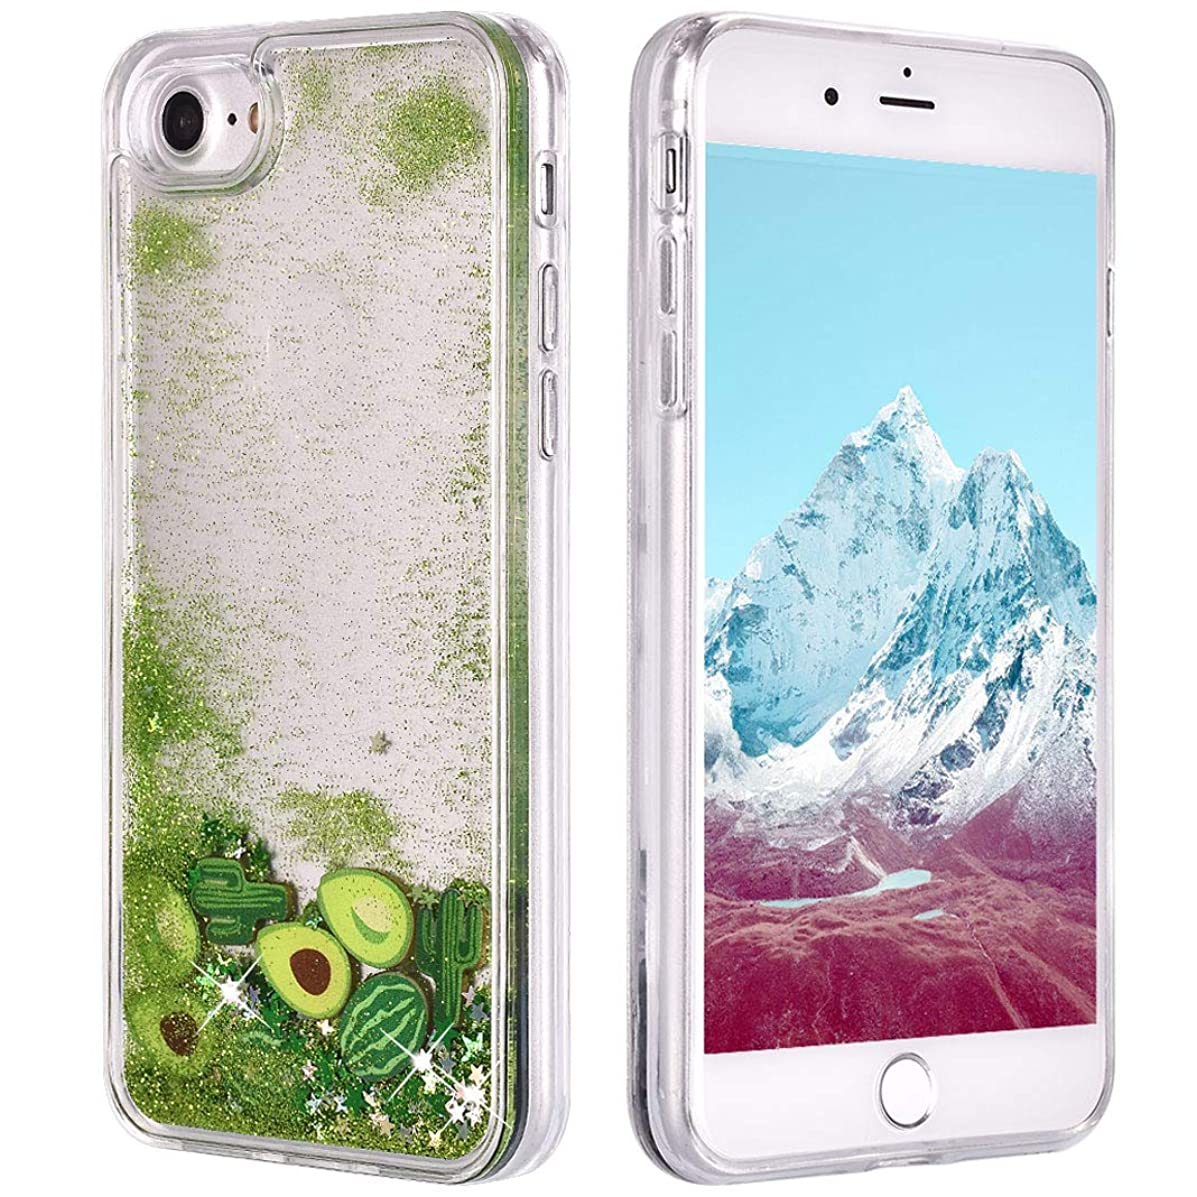 iPhone 7 Case, iPhone 8 Glitter Case,LolStore Cute Bling Liquid Floating Cover Quicksand Flowing Ultra Clear Soft TPU Bumper Shell Protective Slim Case for iPhone 7/8 4.7 Inch, Cactus